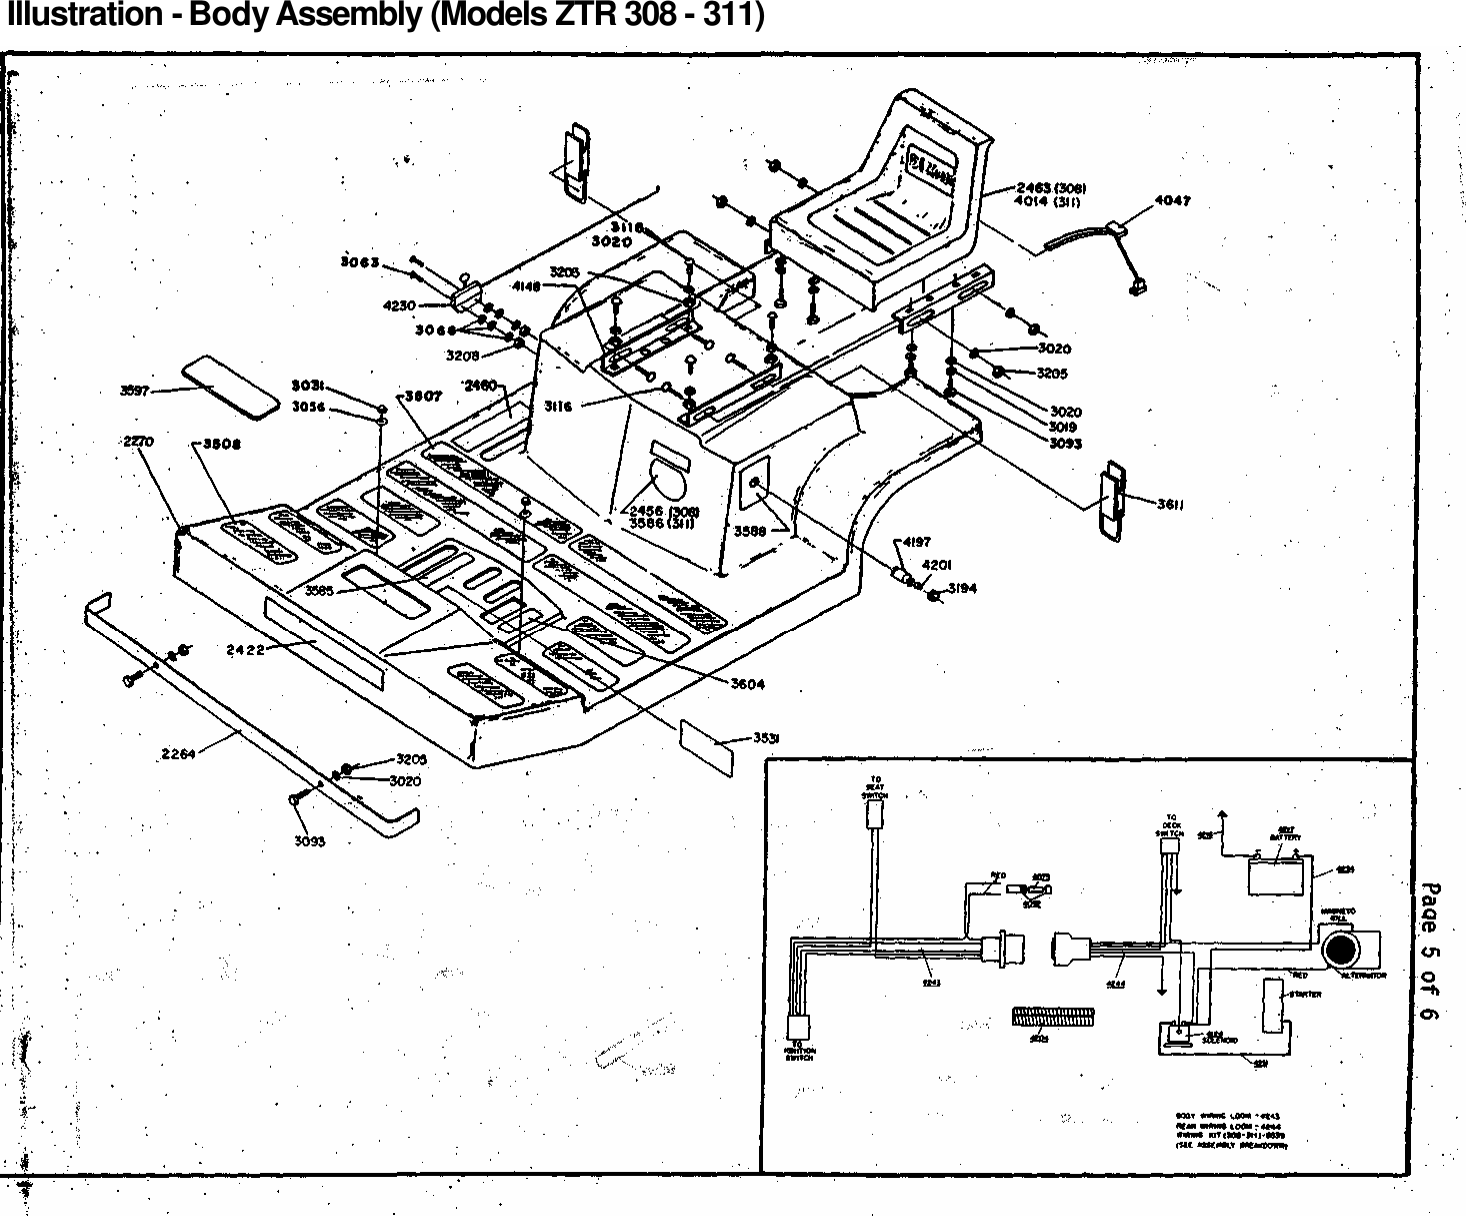 Dixon Ztr 3Ii Users Manual OM, 308, 311, 1985, ZERO TURN